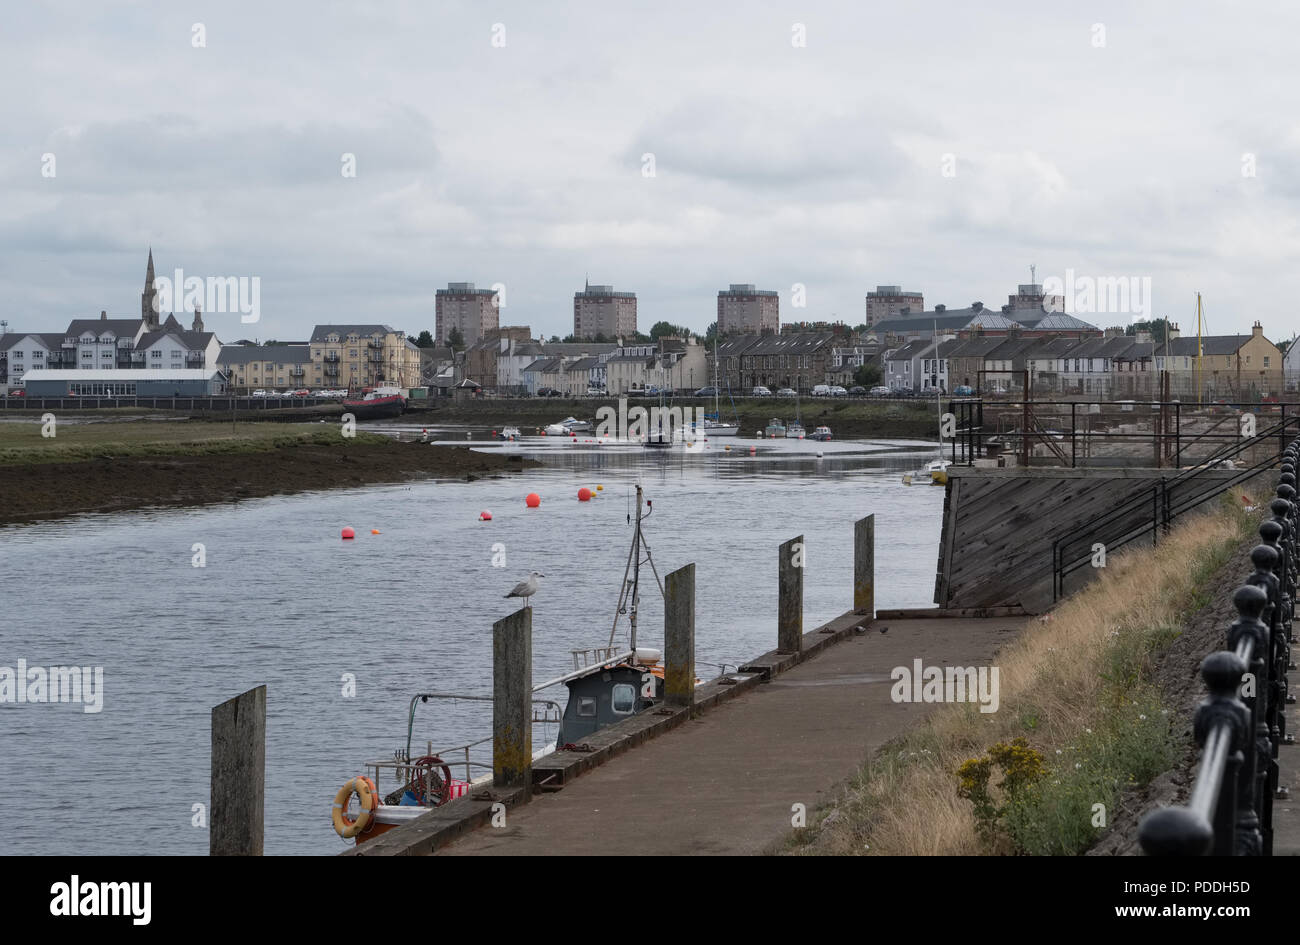 Looking accross the bay onto the old town of Irvine in North Ayrshire Scotland. - Stock Image